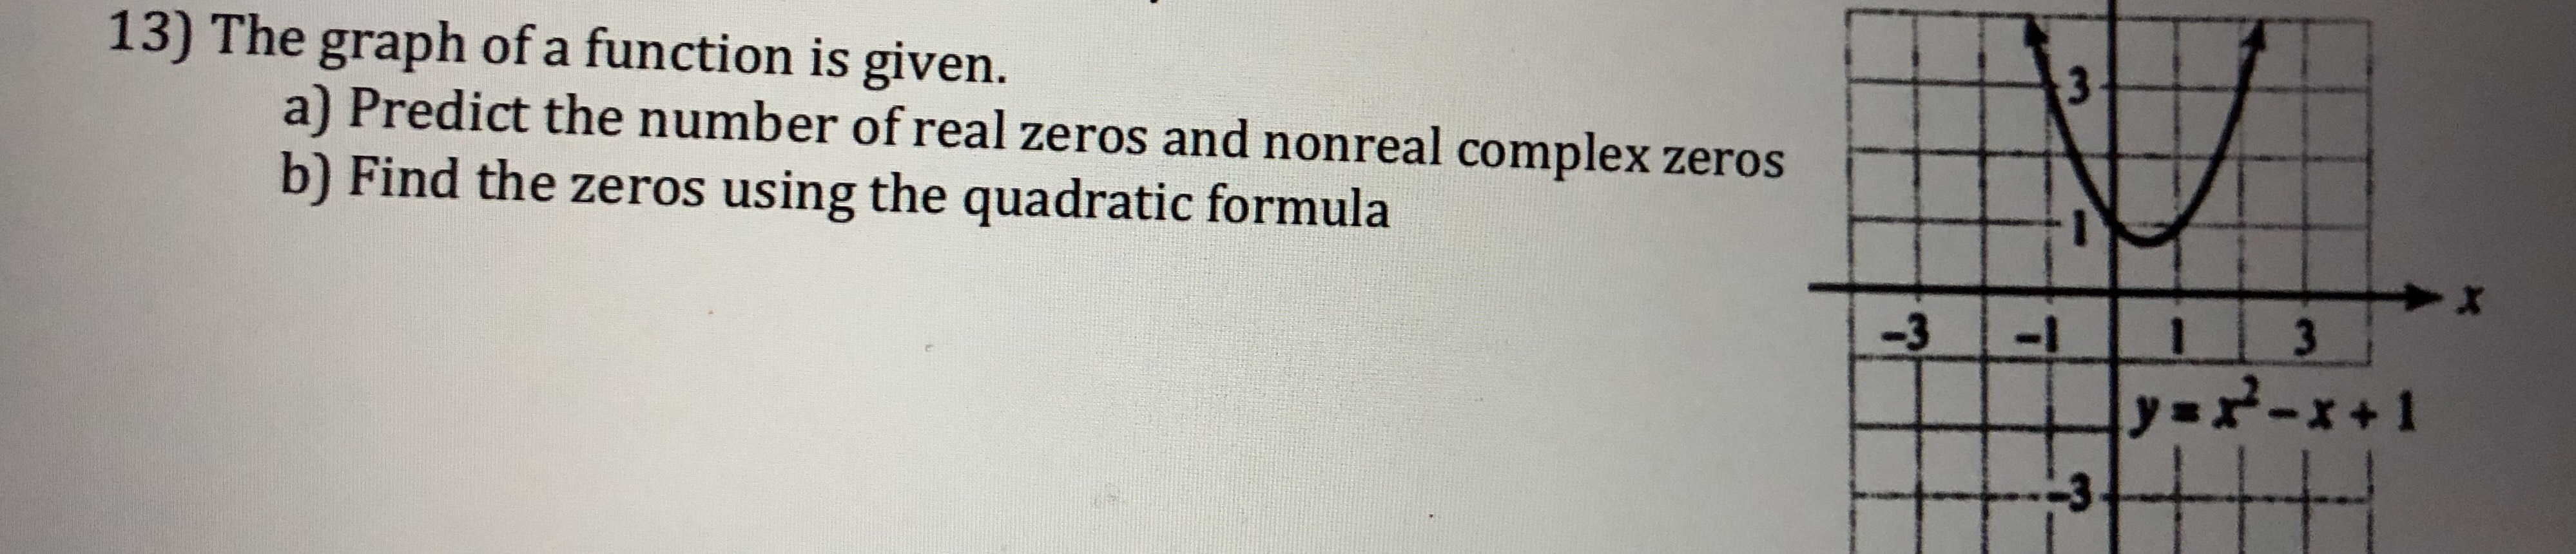 13) The graph of a function is given. a) Predict the number of real zeros and nonreal complex zeros b) Find the zeros using the quadratic formula -313